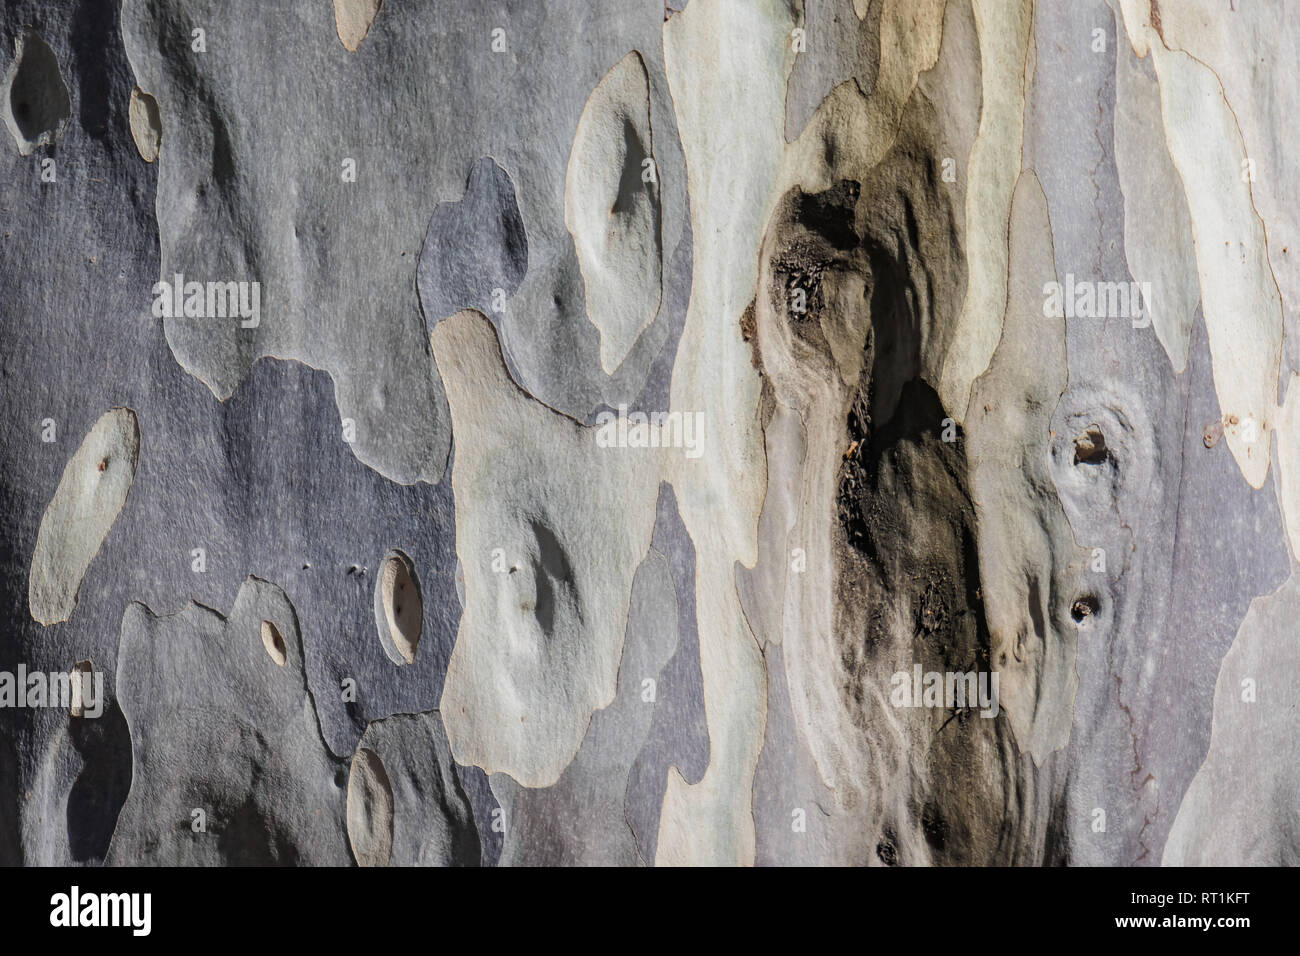 Close up shot of the Eucalyptus maculata tree trunk skin at Los Angeles, California - Stock Image